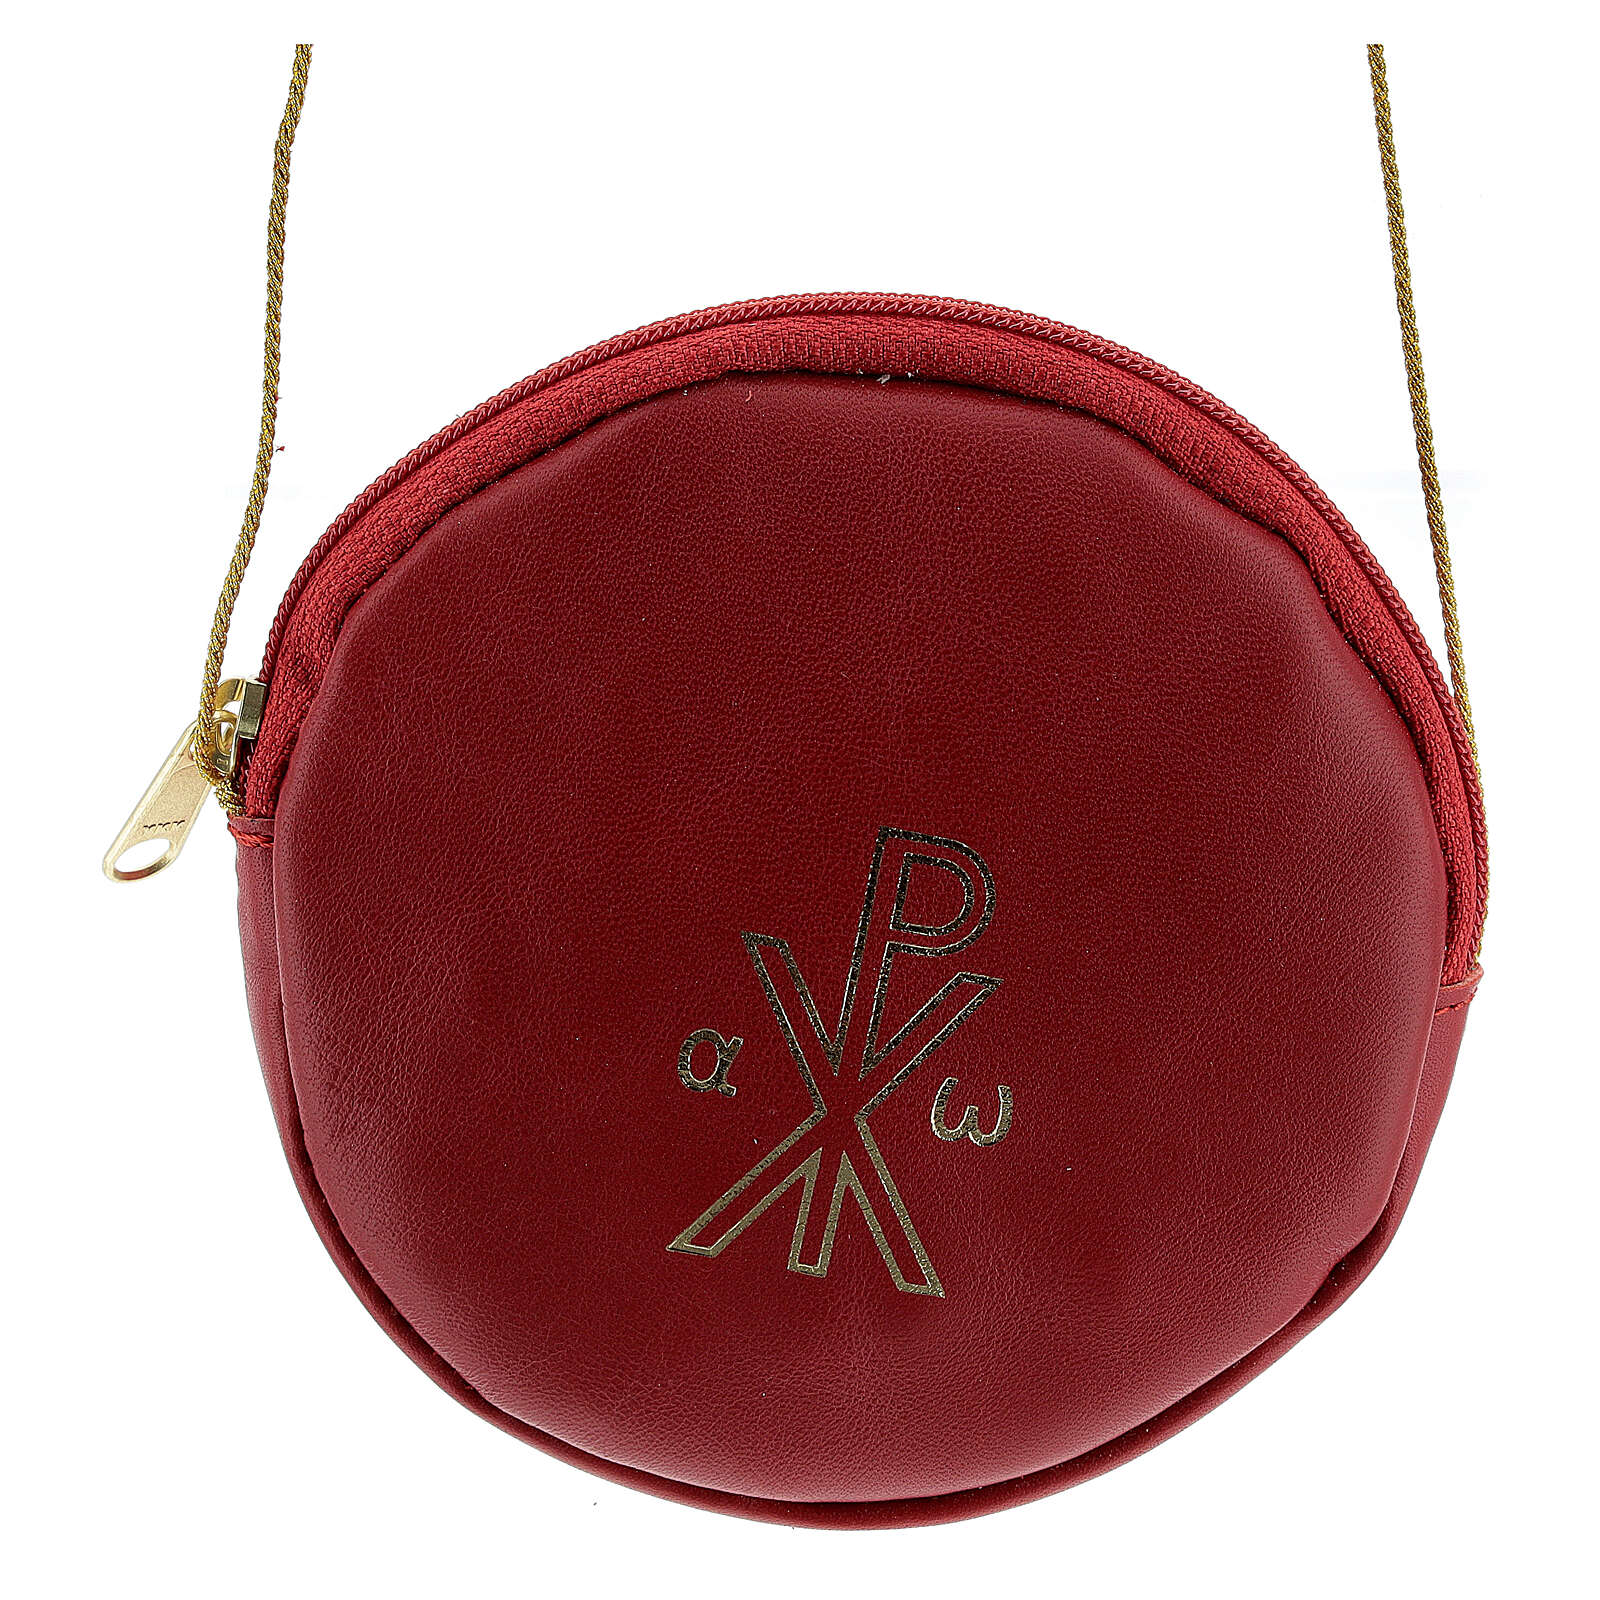 Paten case in real red leather monogram Christ gold 12 cm 4